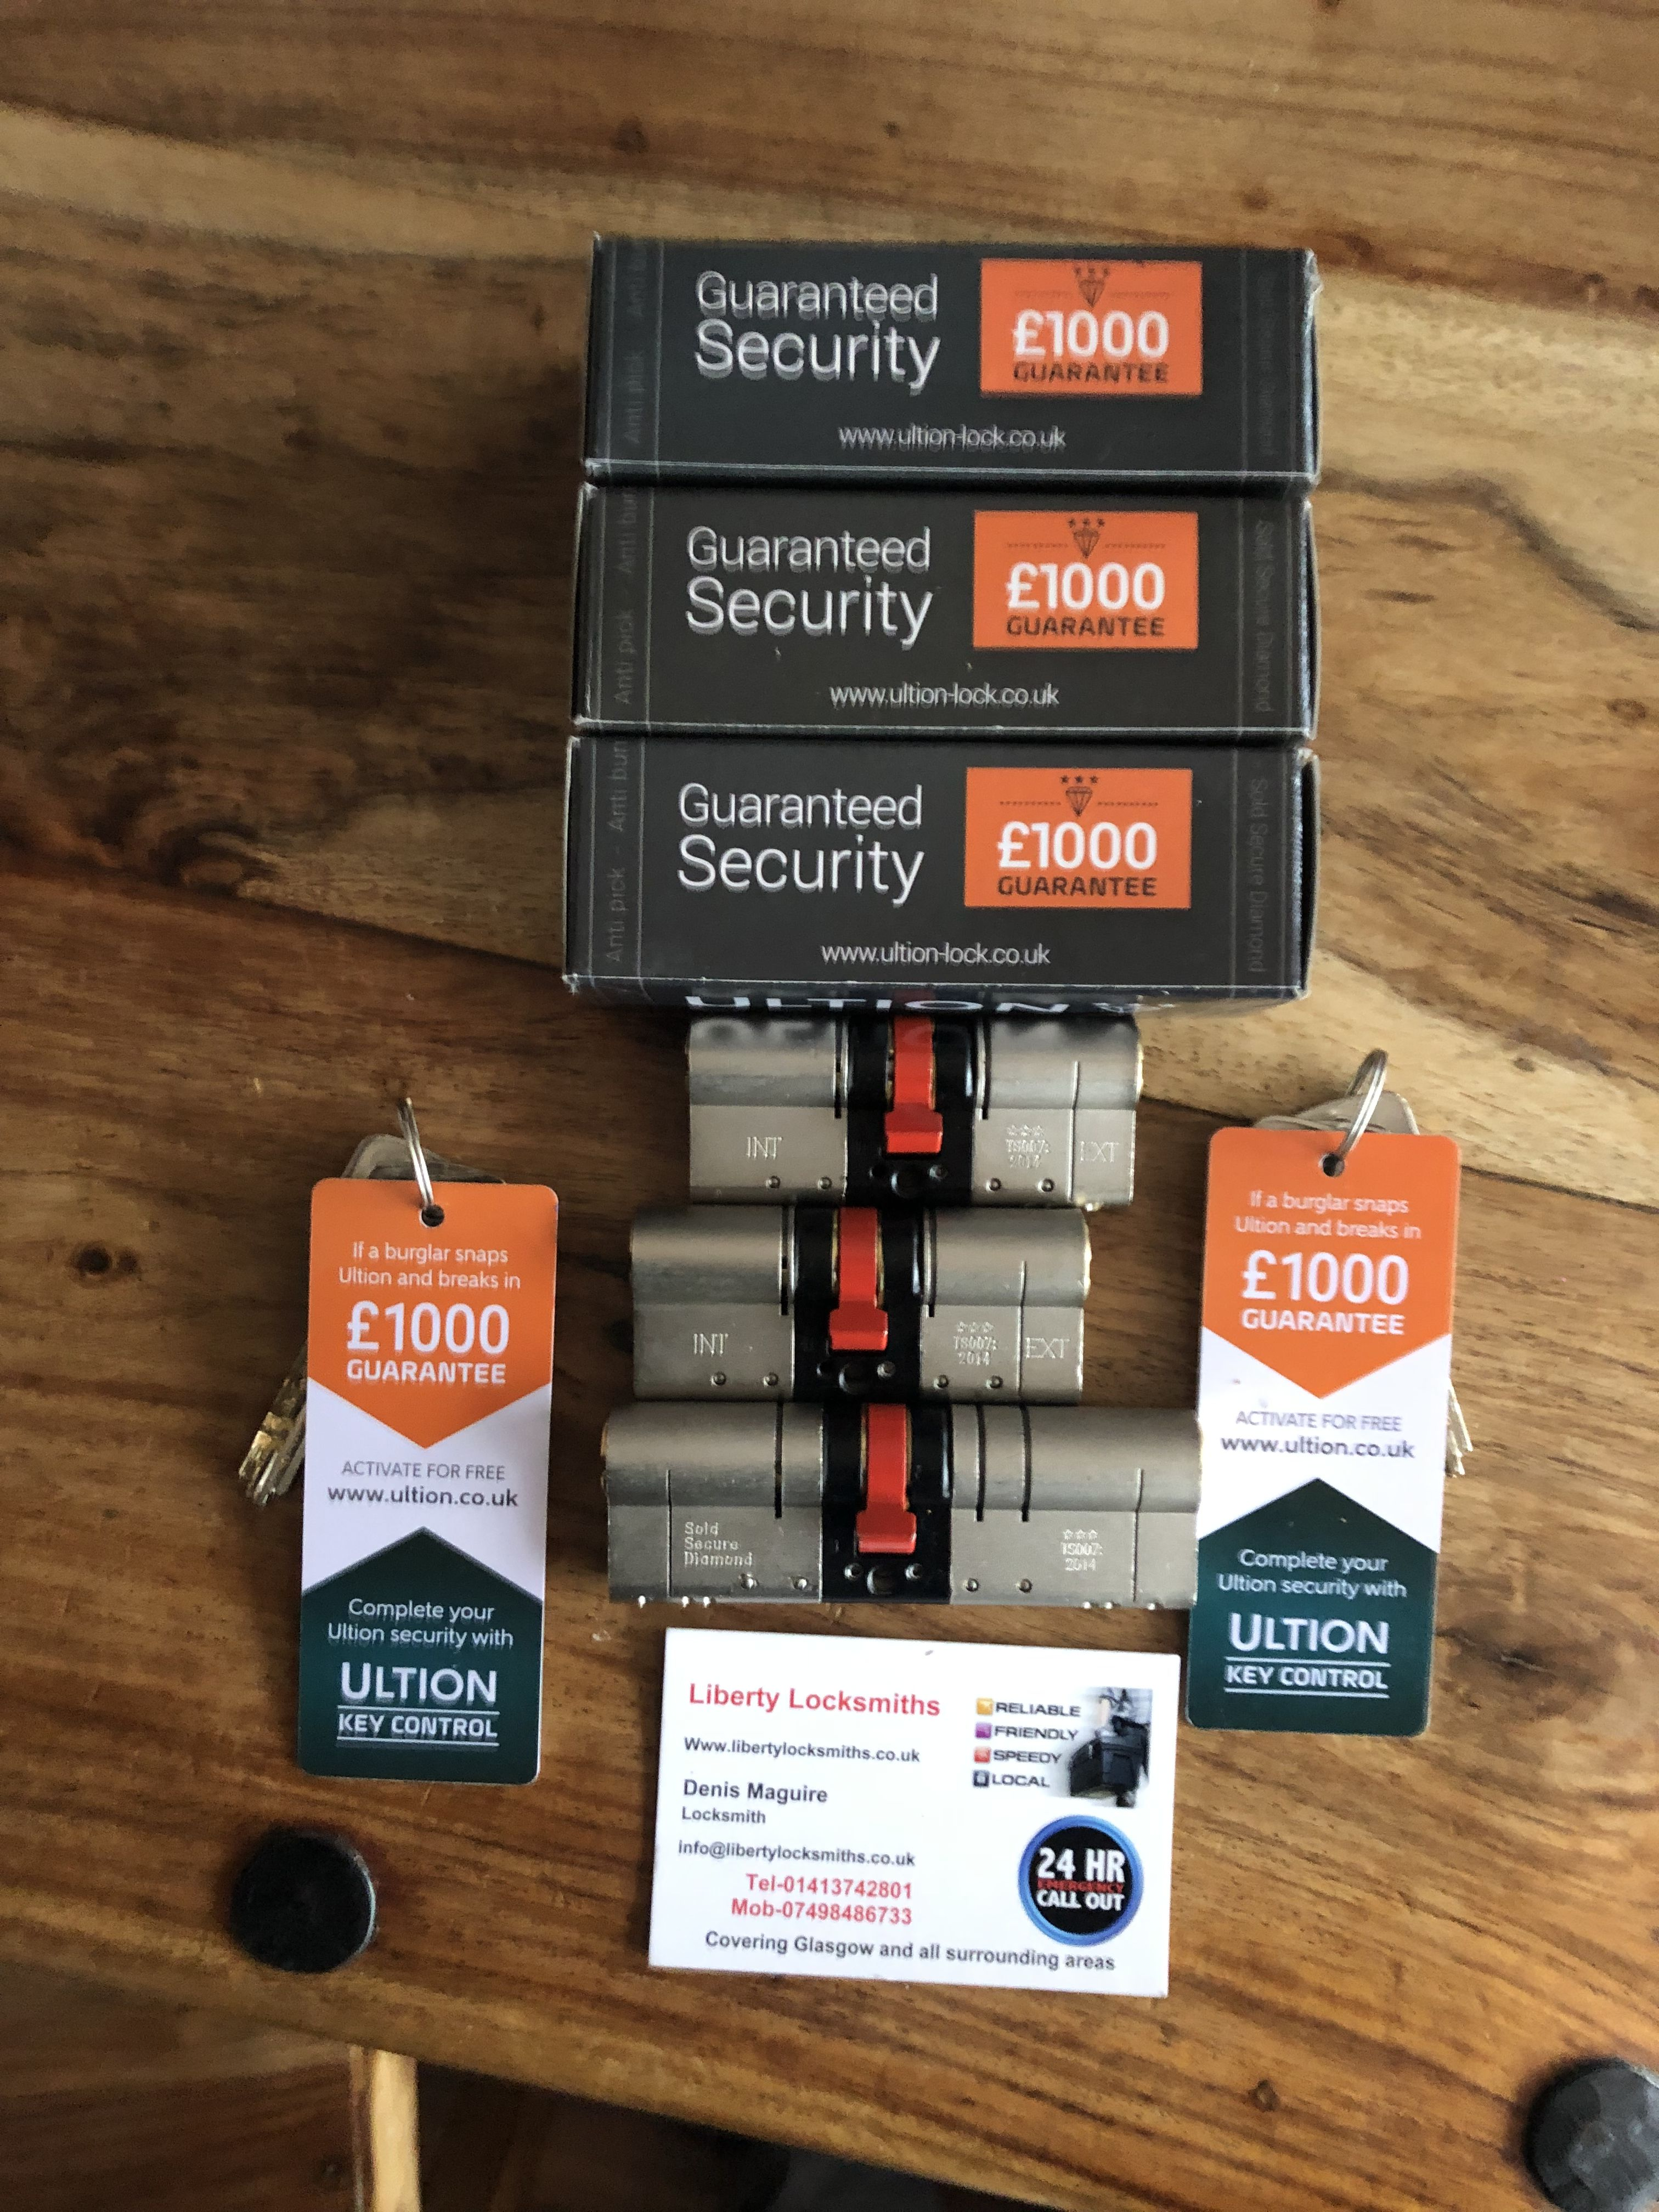 Another delivery from brisantsecure of ultion locks this